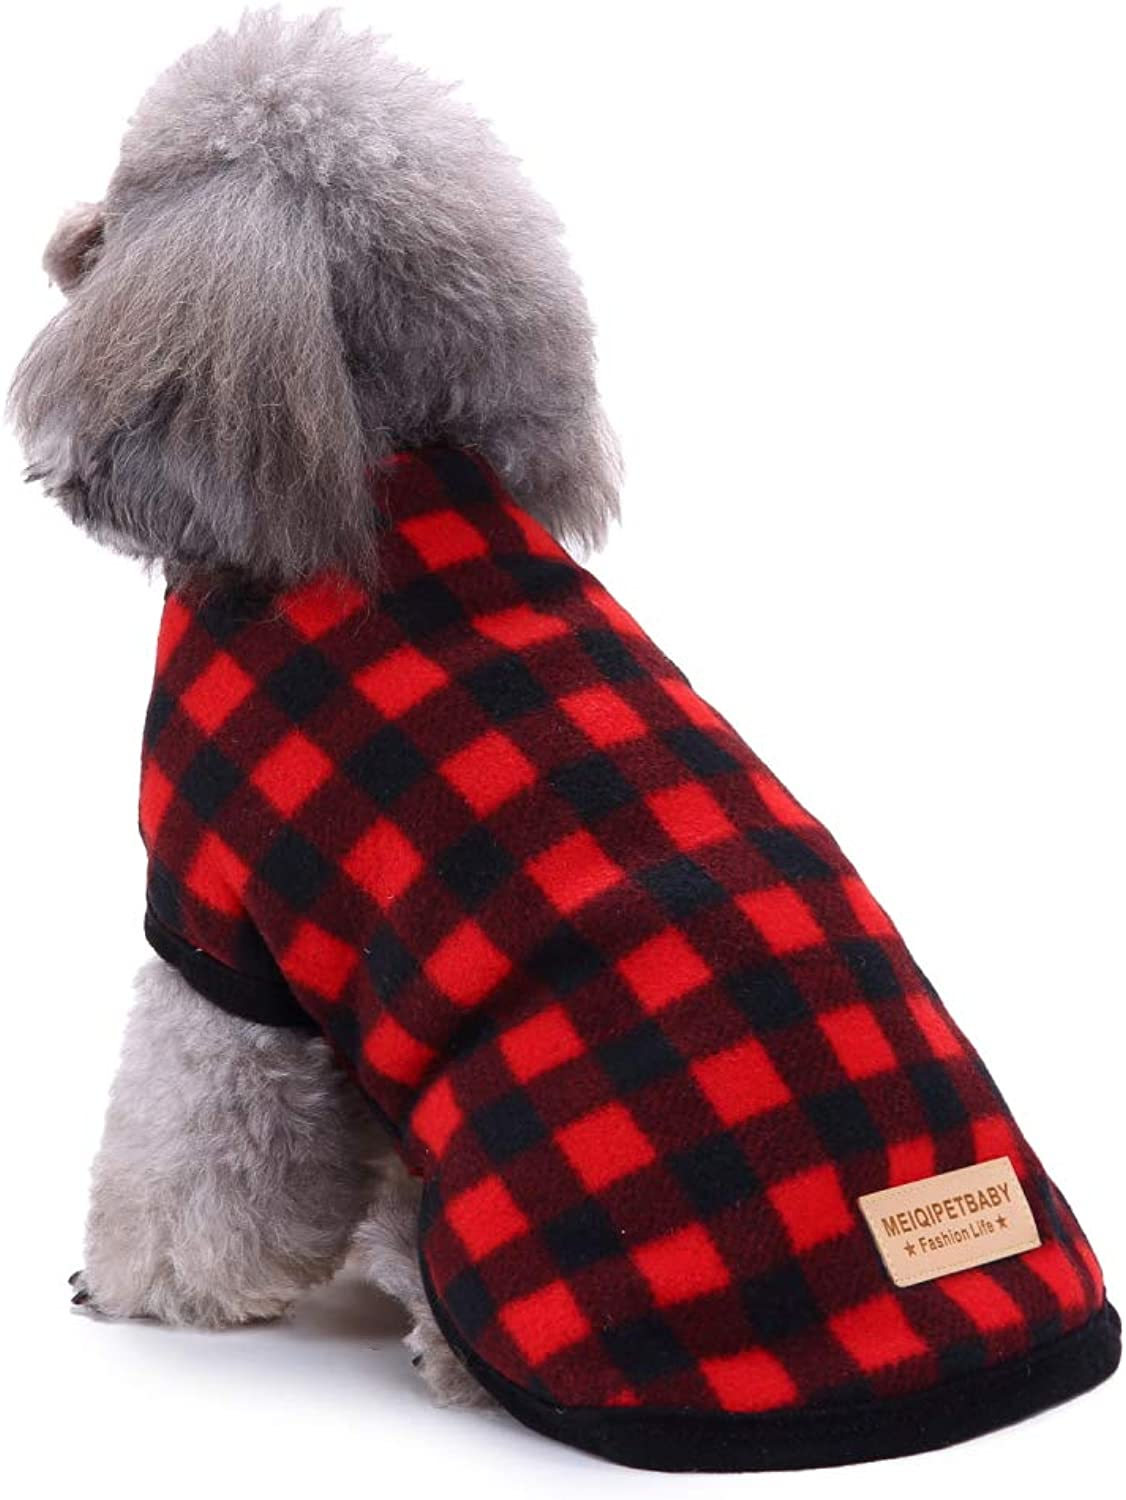 Dog Plaid Shirt Coat Pet Warm and Soft Fleece Winter Clothes for Medium and Large Dogs Apparel Red Back 11.02'' Chest 15.35''